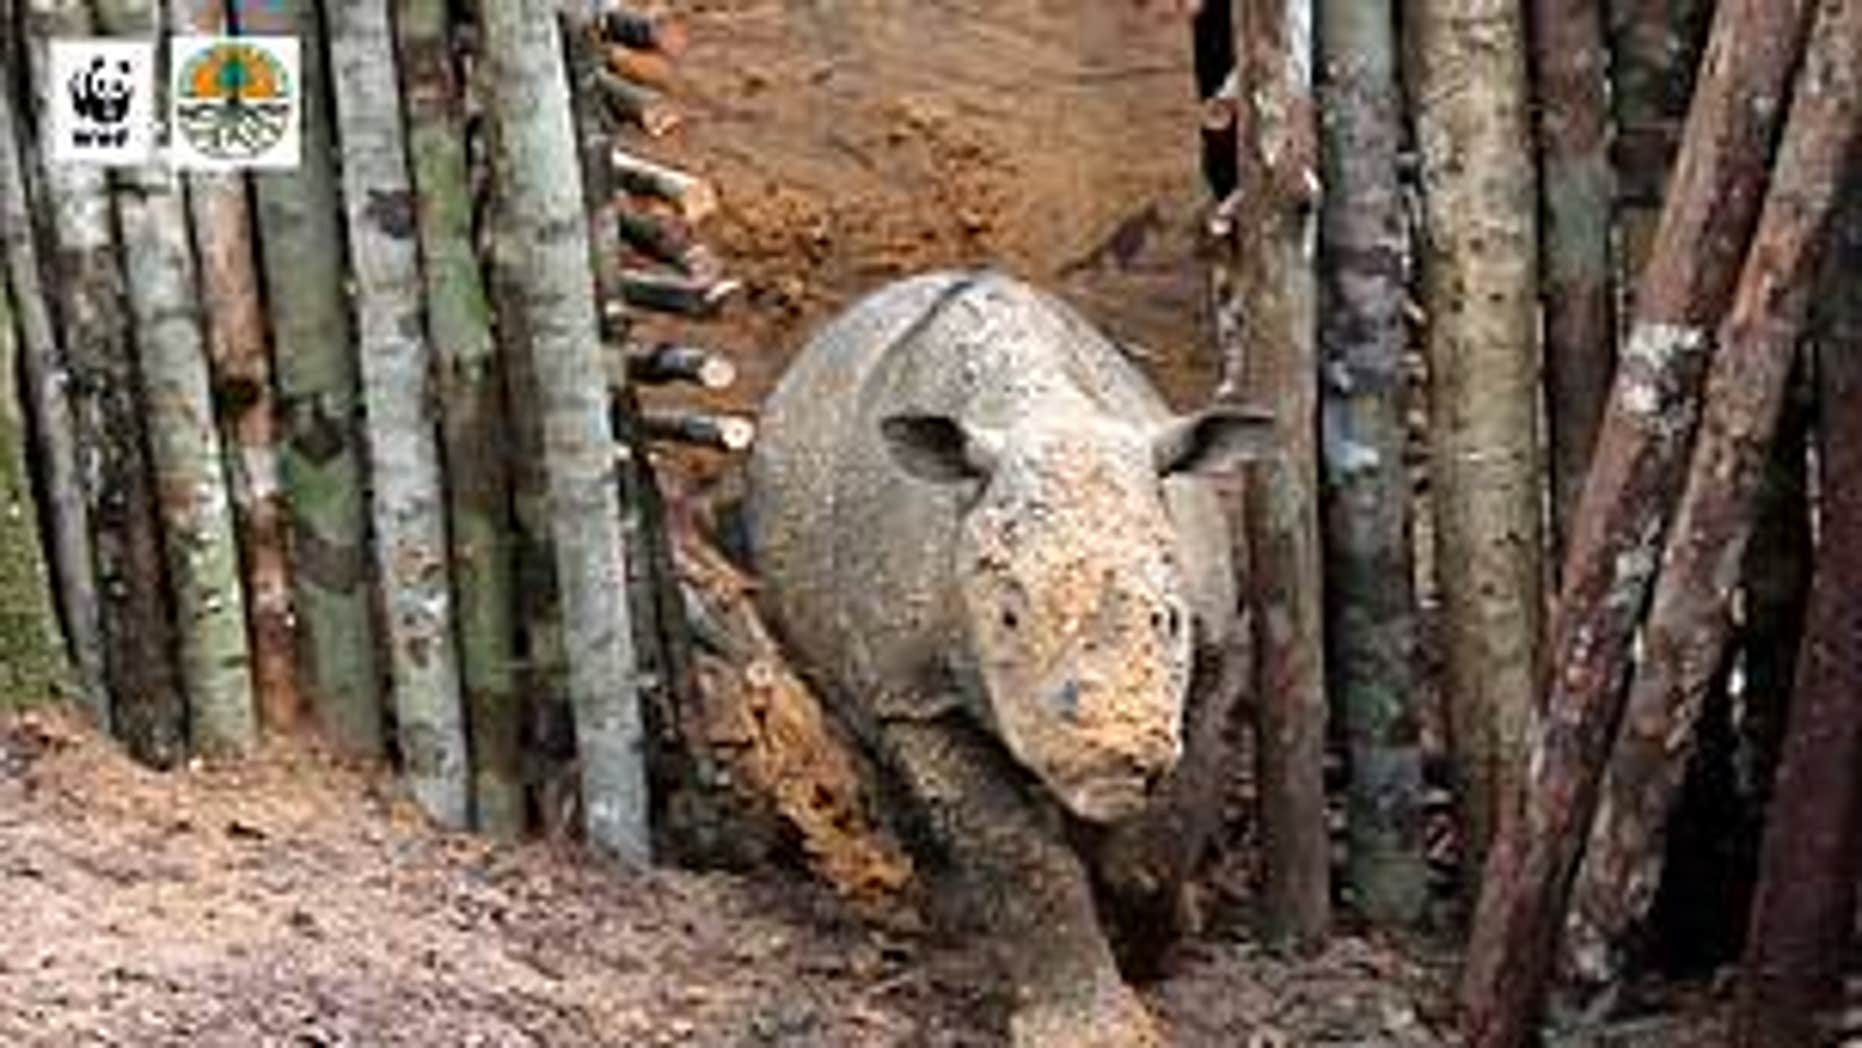 The rare Sumatran rhino (Ari Wibowo / WWF-Indonesia)